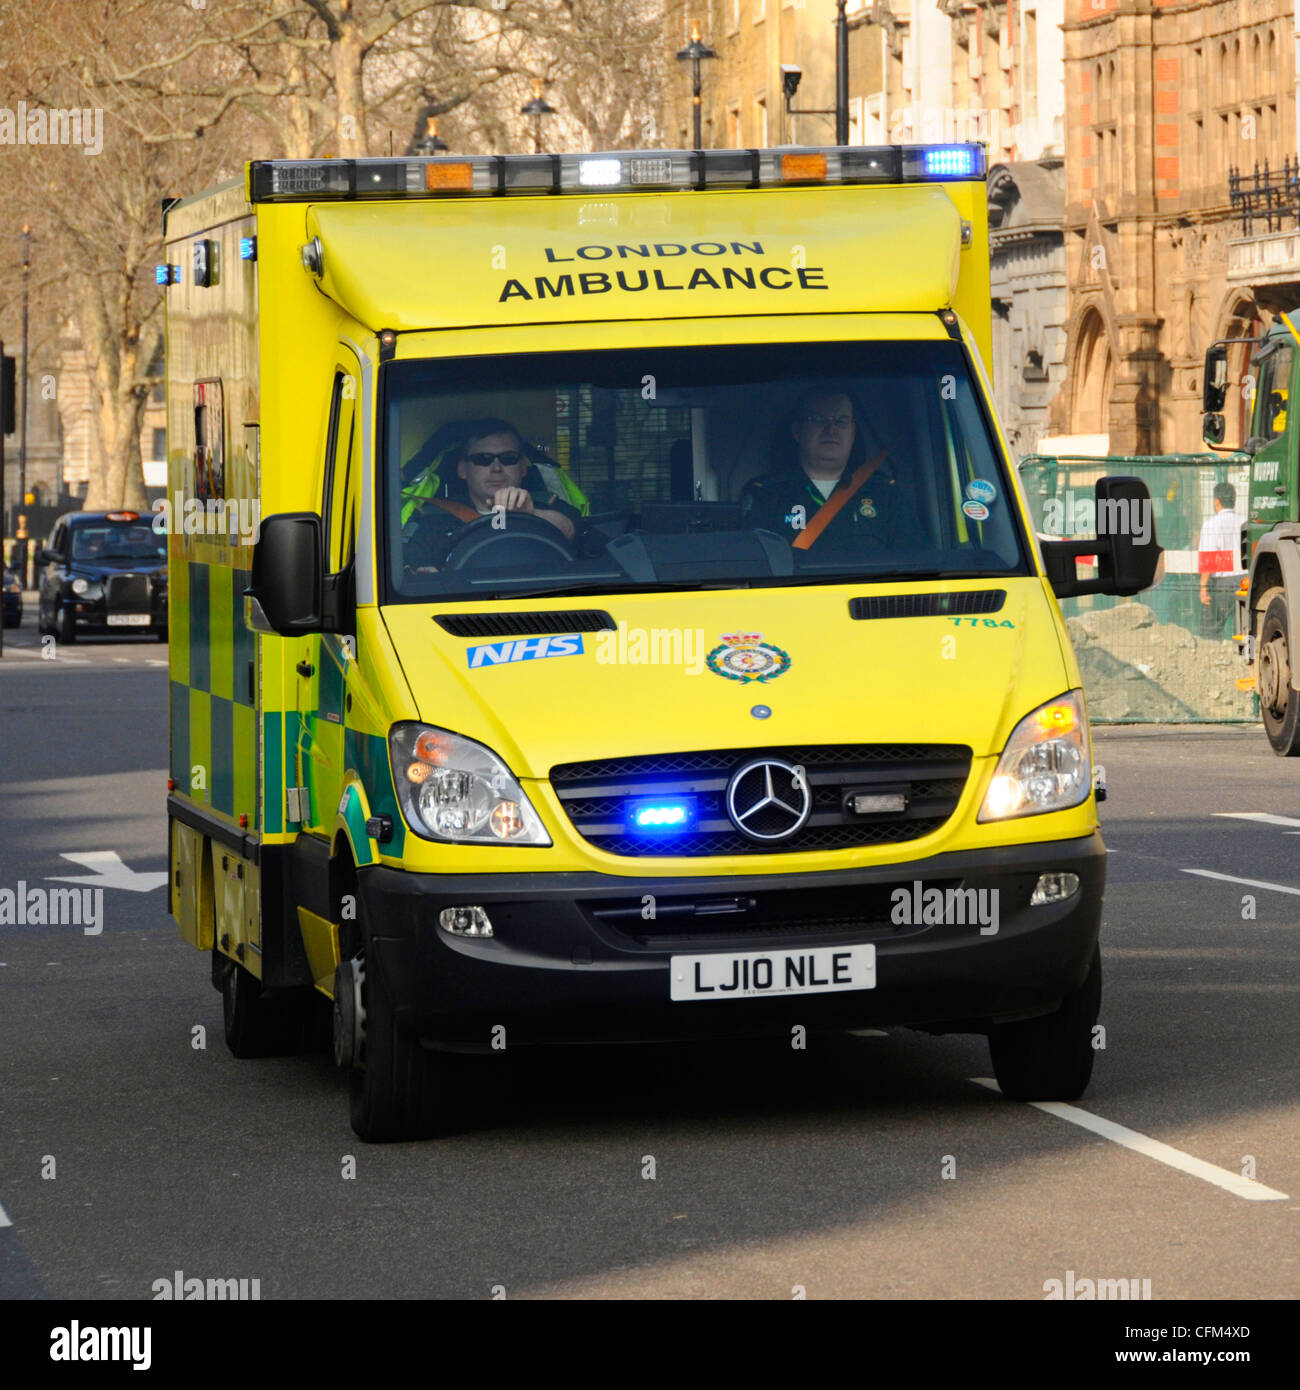 NHS London UK ambulance emergency SOS call National Health Service paramedic crew on board responding 999 call driving - Stock Image